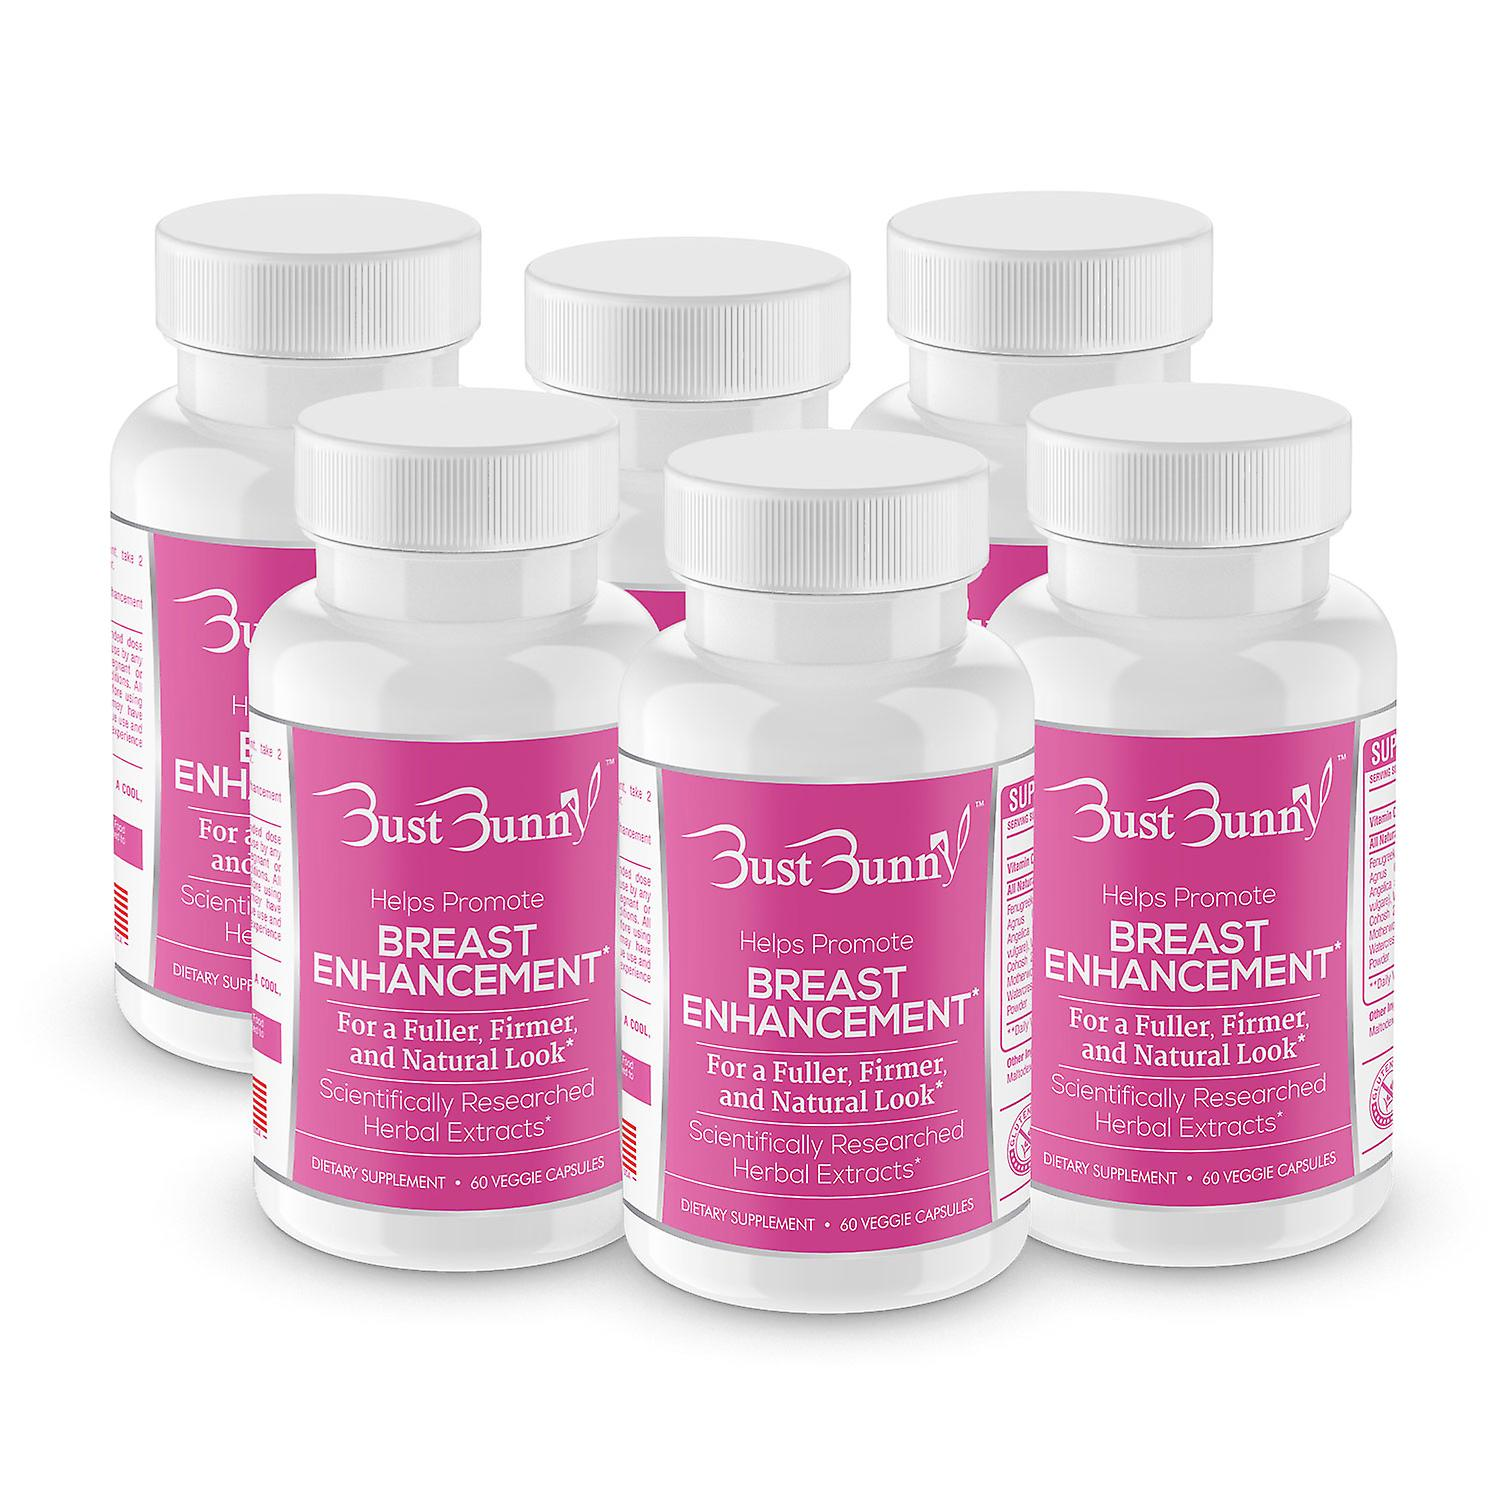 Bust Bunny Breast Enhancement supplement 6 Month Supply